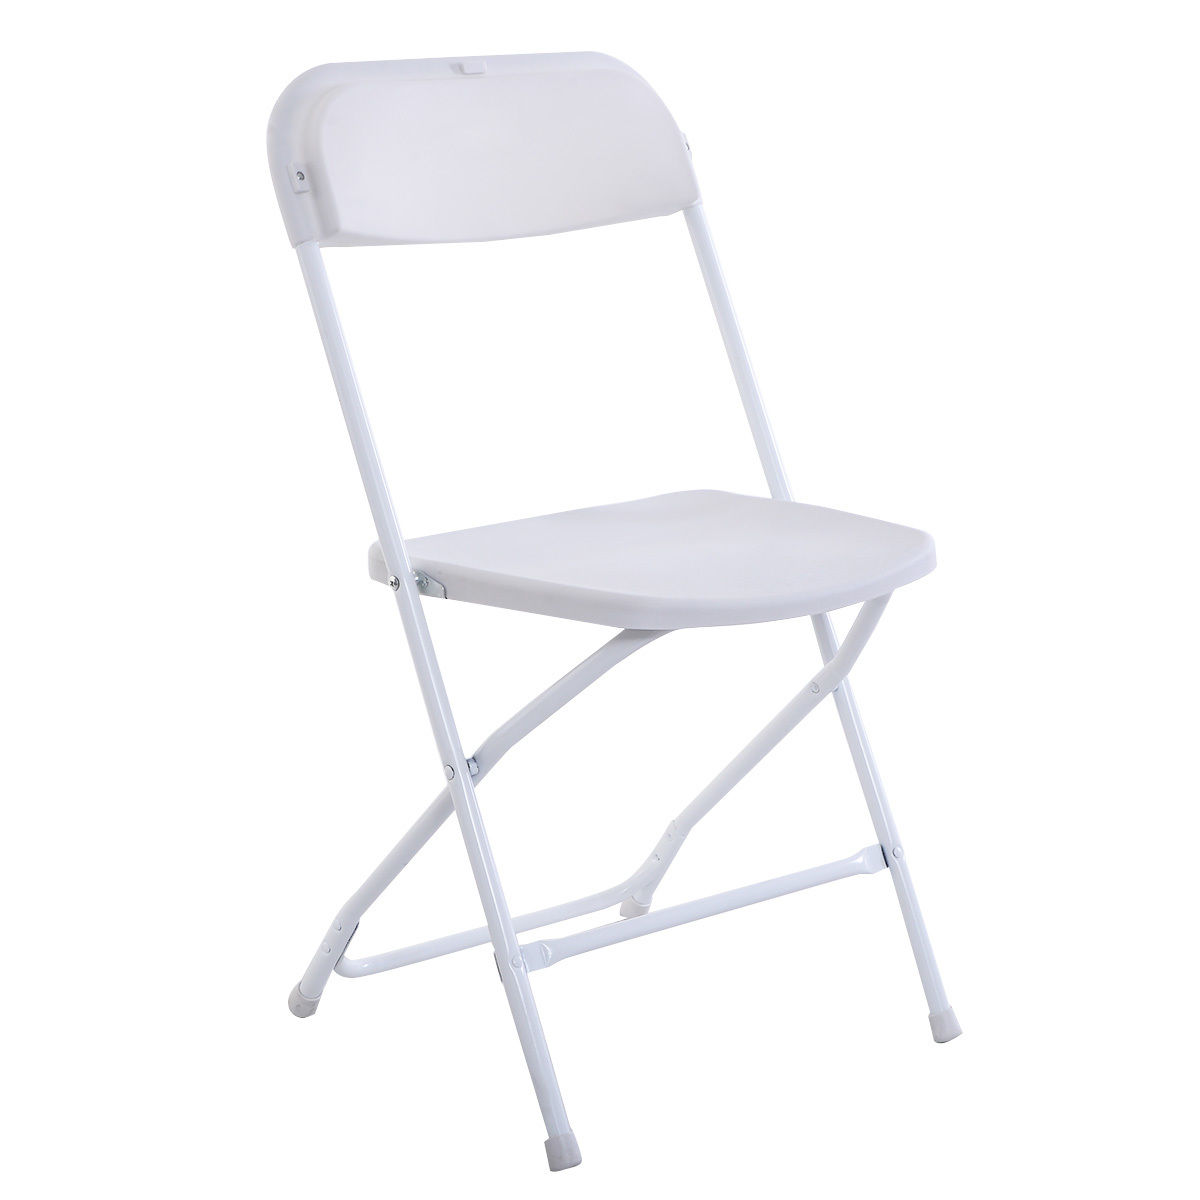 (5) Commercial White Plastic Folding Chairs Stackable Wedding Party Event  Chair